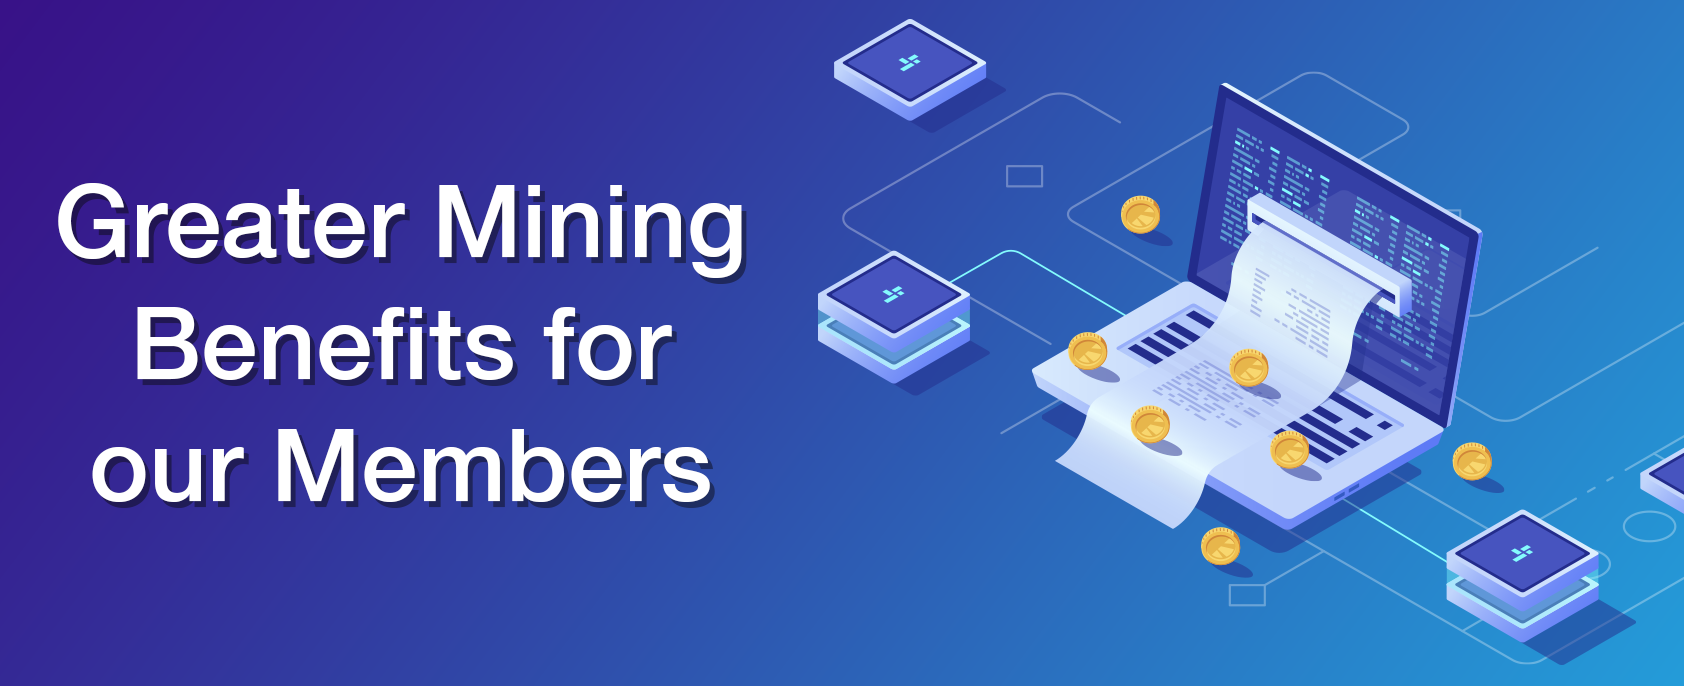 Greater Mining Benefits